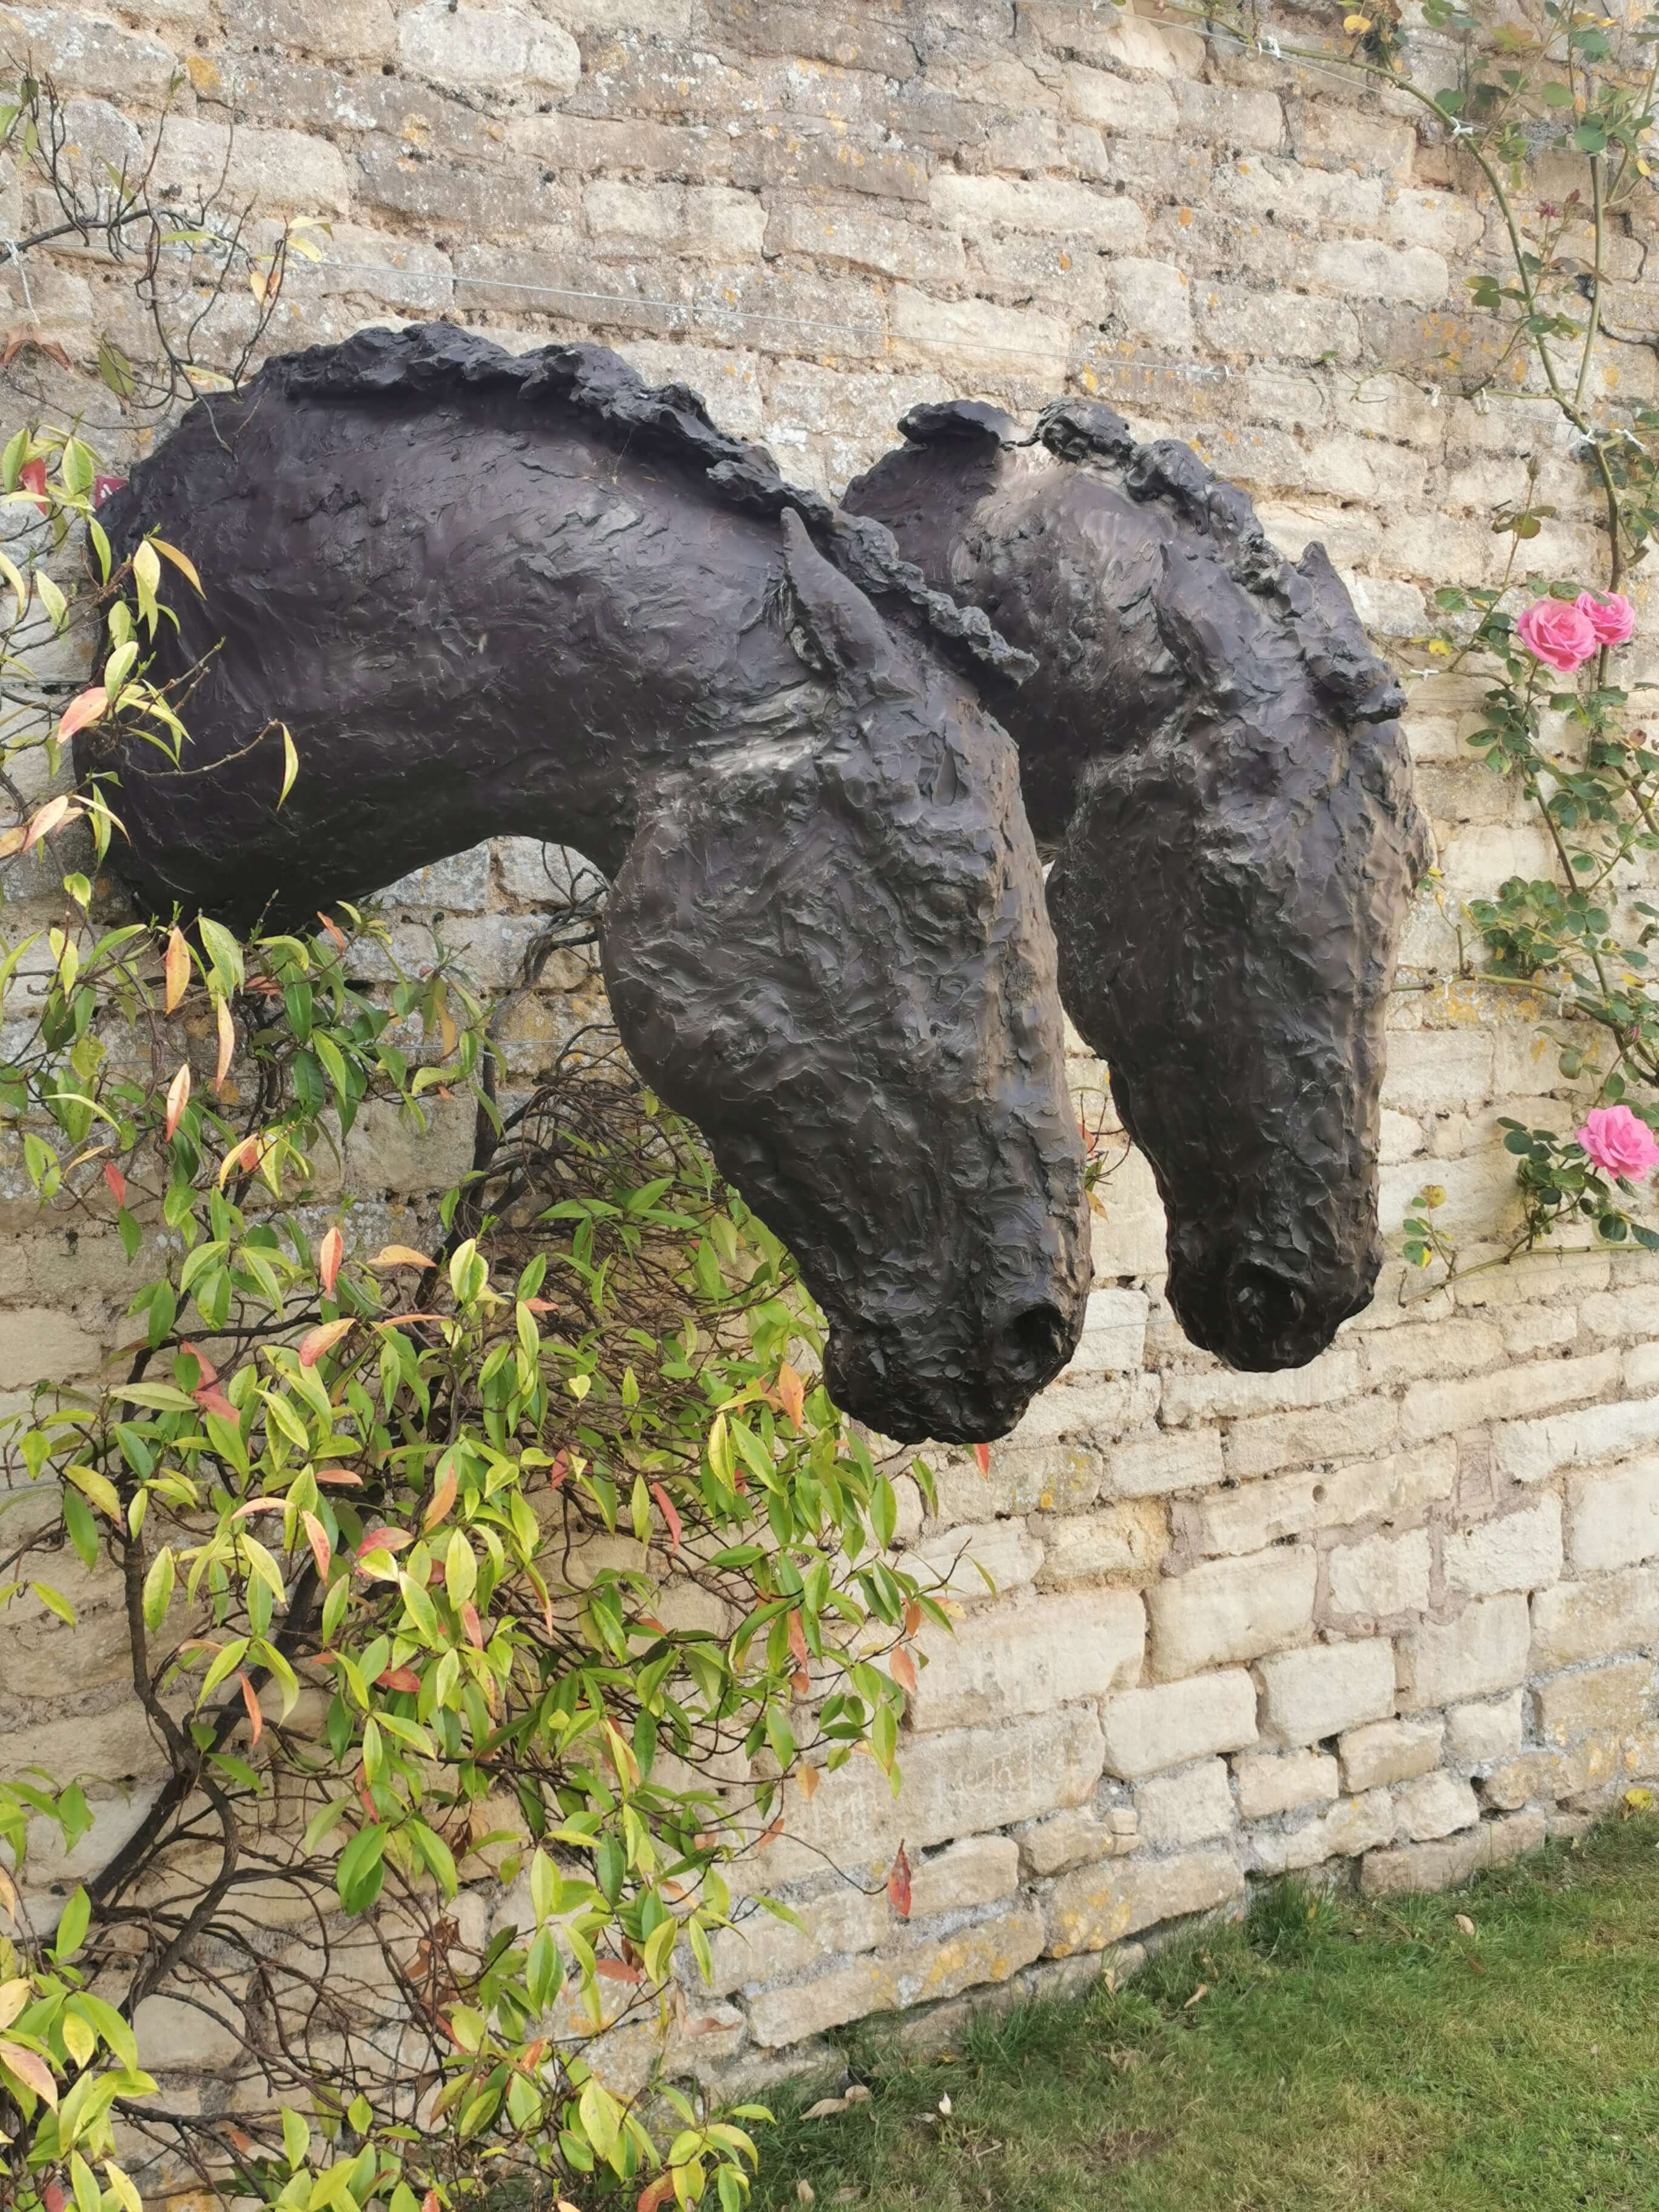 Nicola Toms - Horse Studies with Muse. The Sculpture Company